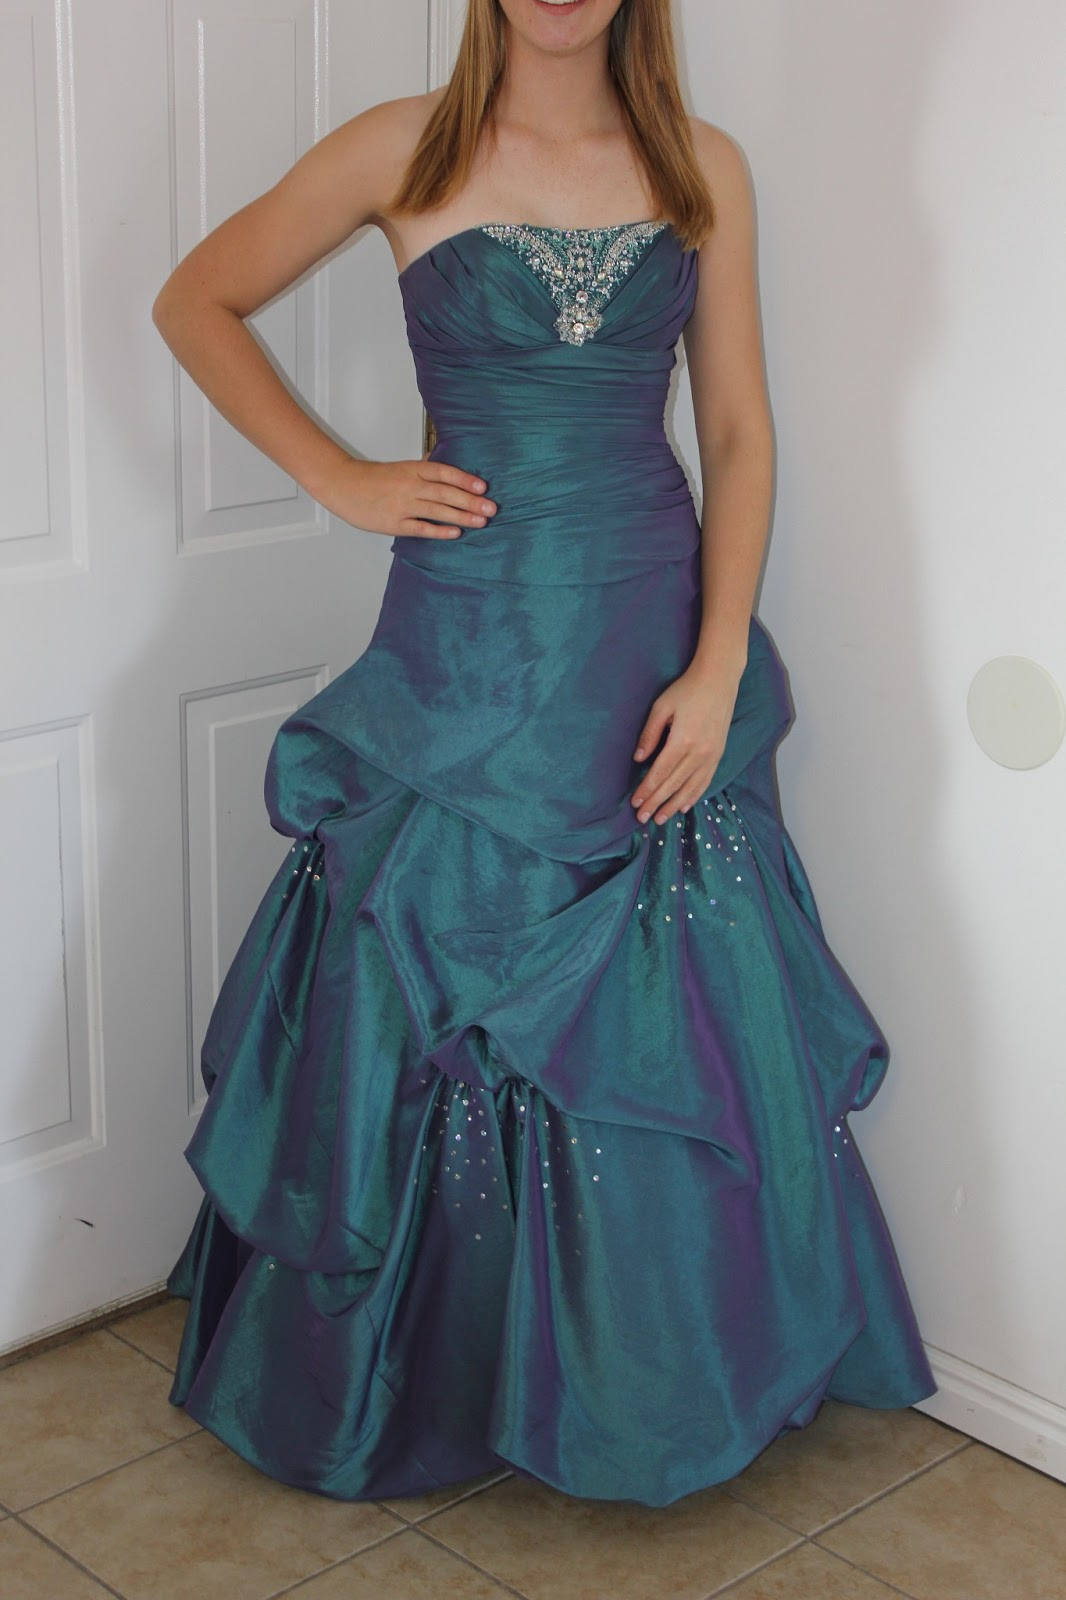 Rent Prom Dresses By Mail - Discount Evening Dresses